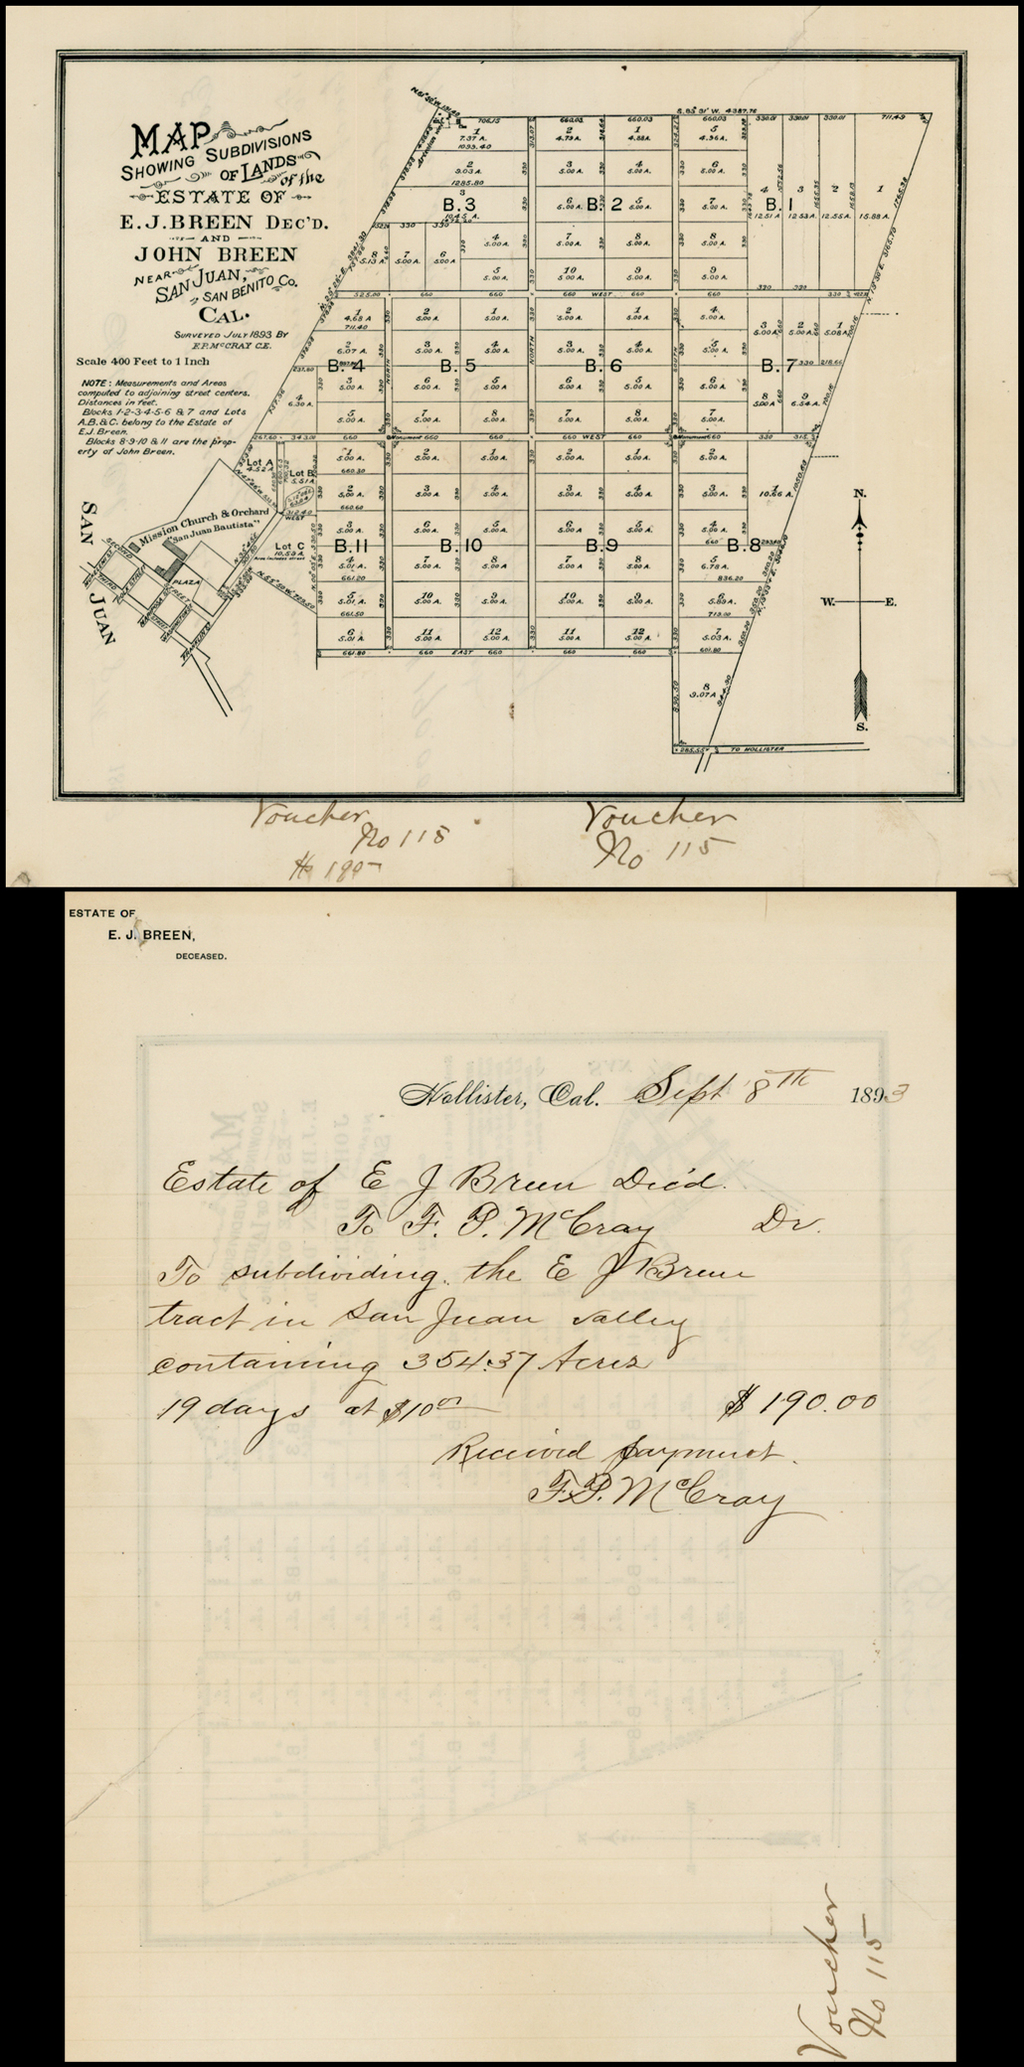 Map Showing Subdivisions of Lands of the Estate of E.J. Breen Dec'd. and John Breen  Near San Juan San Benito Co. Cal. Surveyed July 1893 by F.P. McCray C.E.  (with manuscript transfer recitation and bill for survey work on verso) By Anonymous